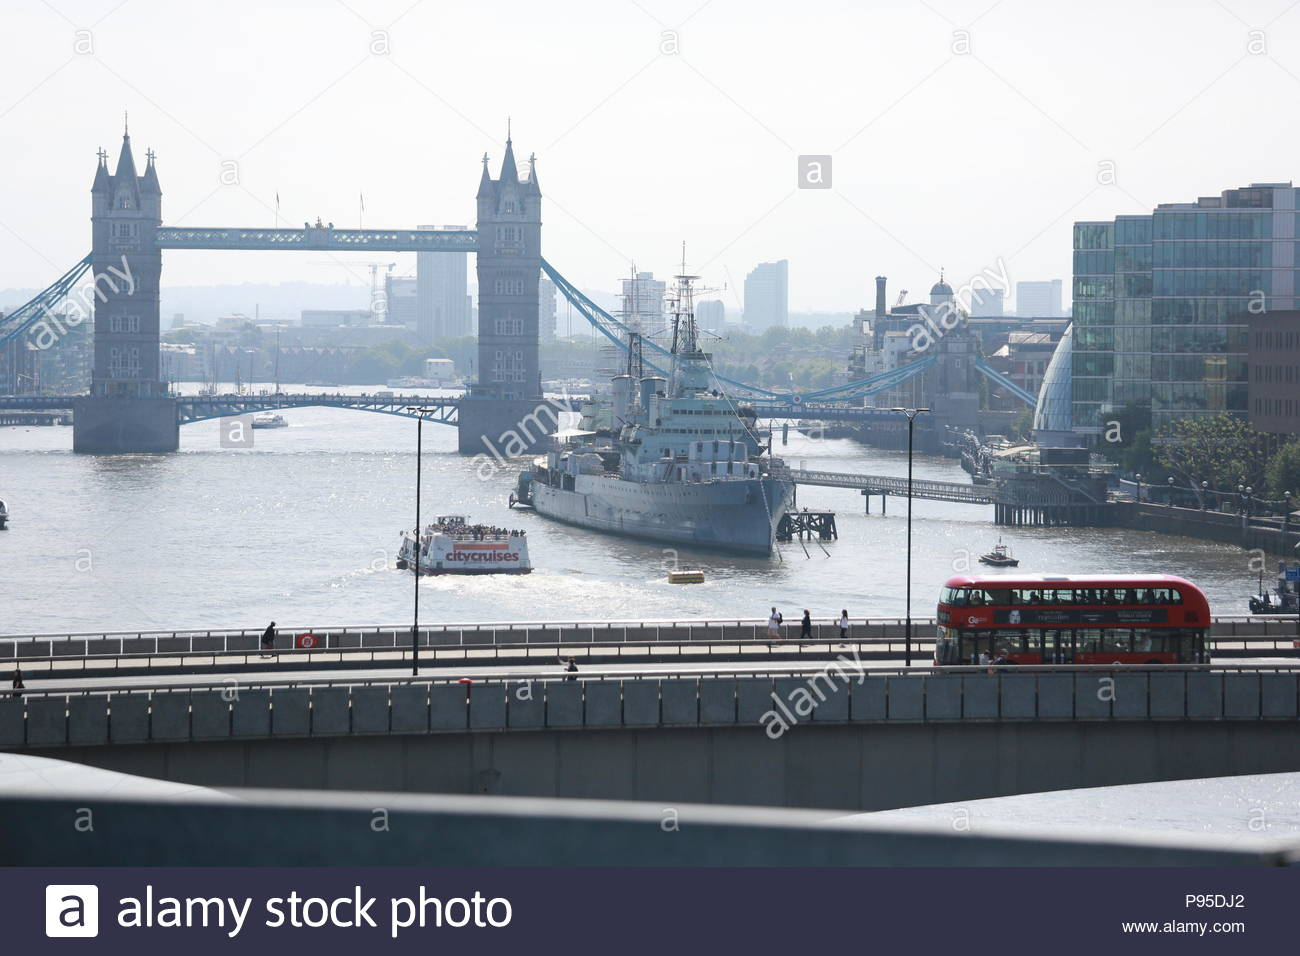 Glorious weather in London as many buildings open for Open Gardens weekend giving beautiful views of the Thames, Tower Bridge and HMS Belfast. - Stock Image